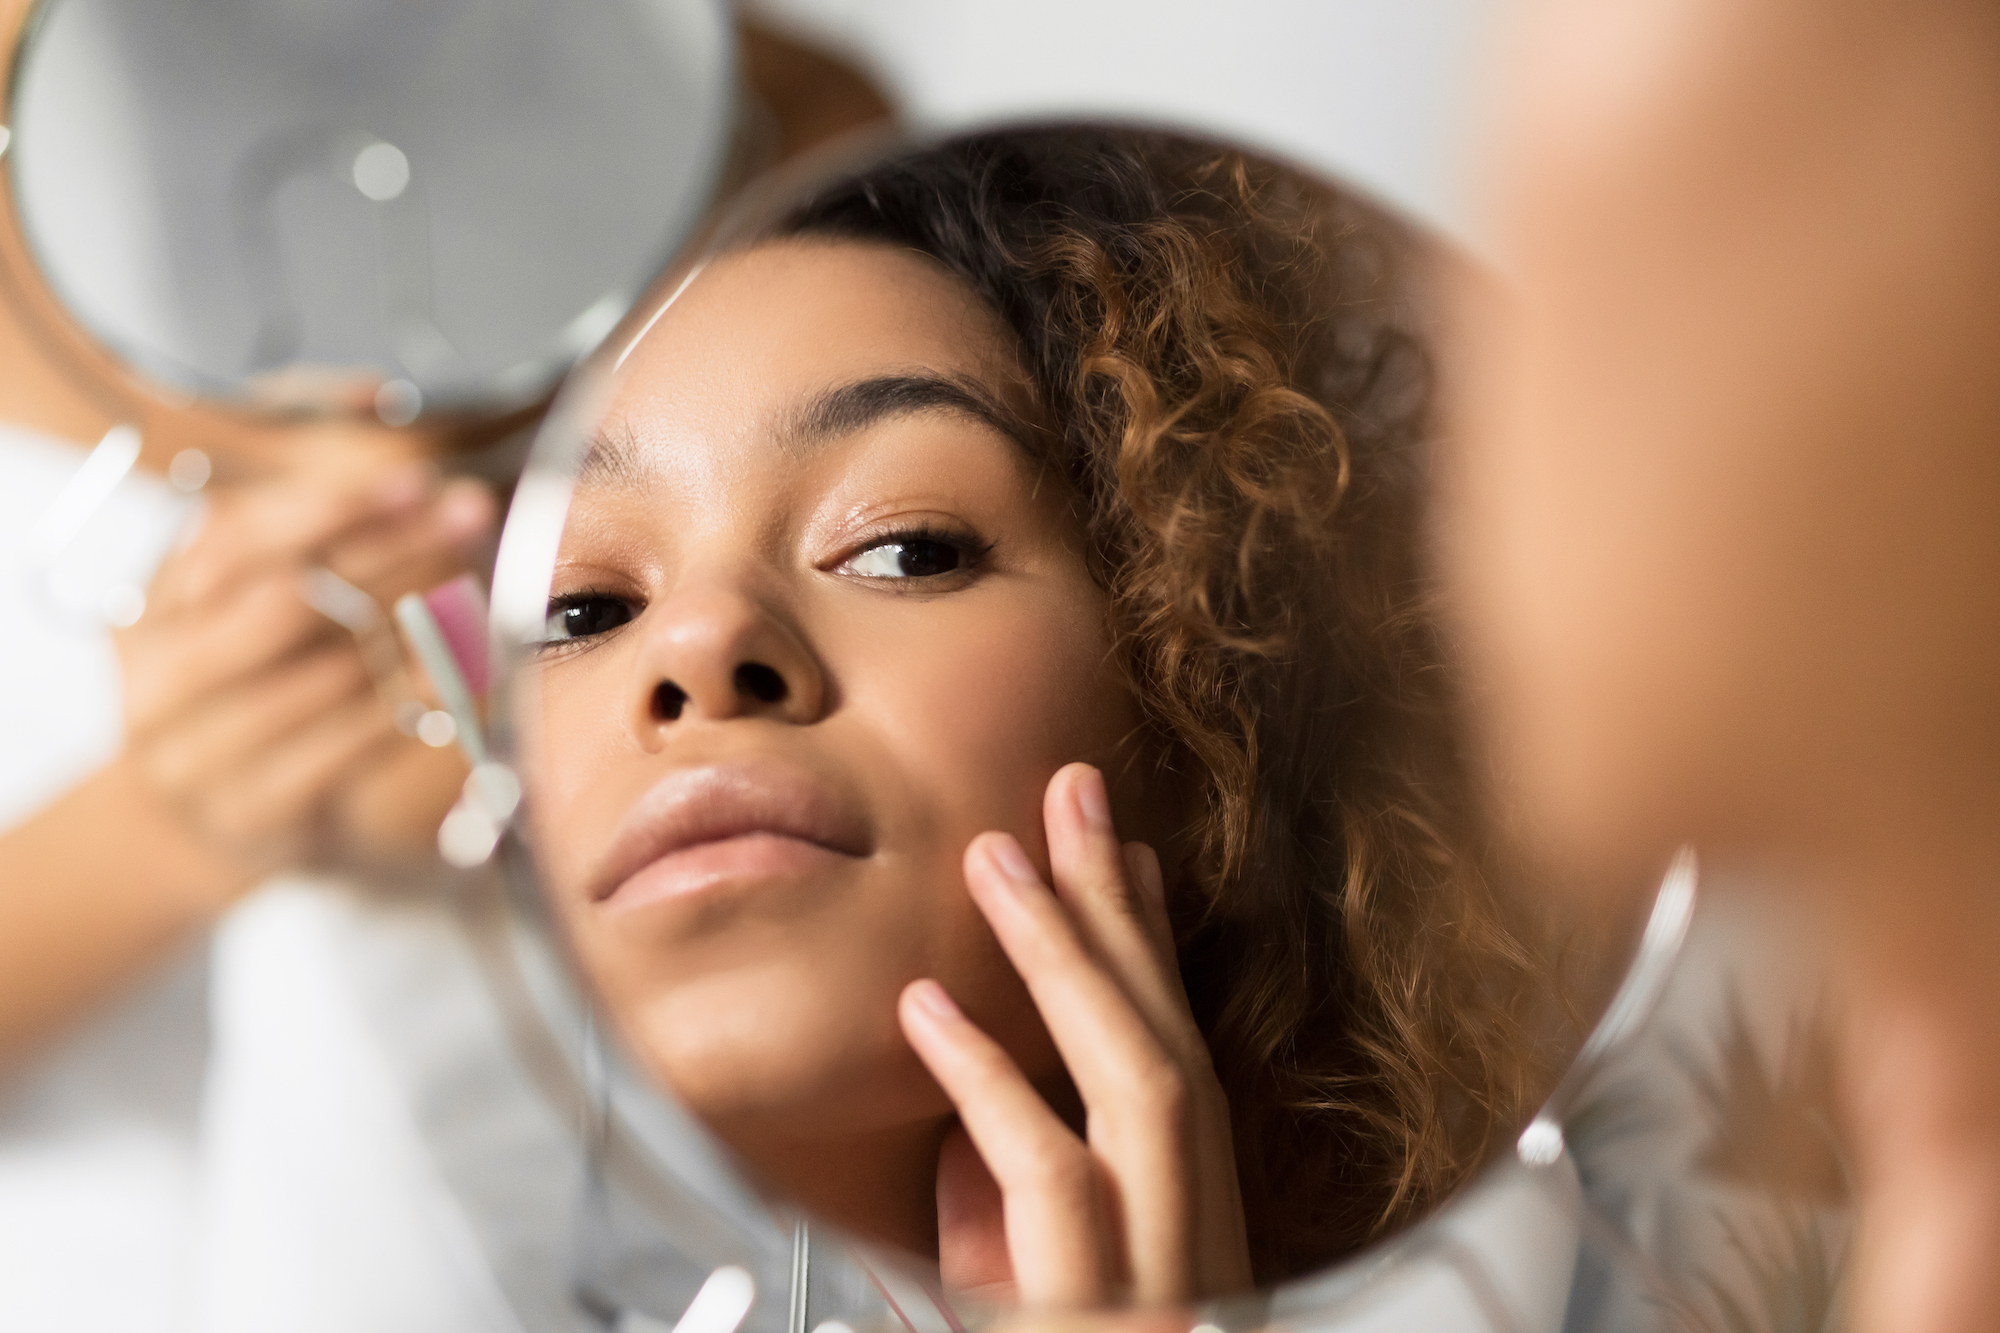 Skincare Concept. Afro Woman Looking In Mirror Touching Face And Perfect Skin At Bathroom. Selective Focus